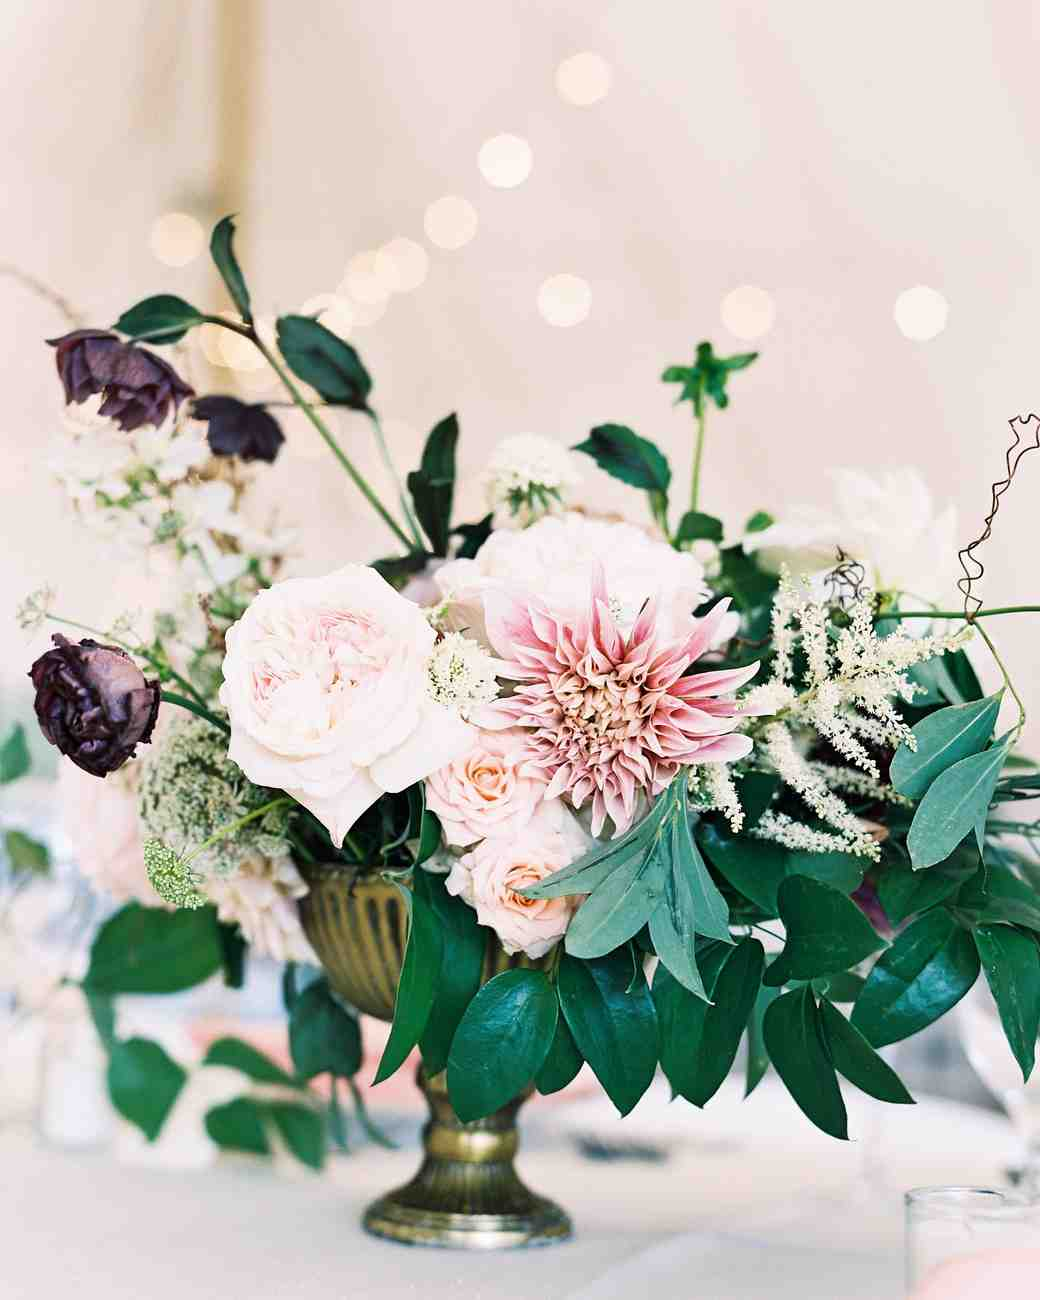 Stunning Summer Centerpieces Using In-Season Flowers